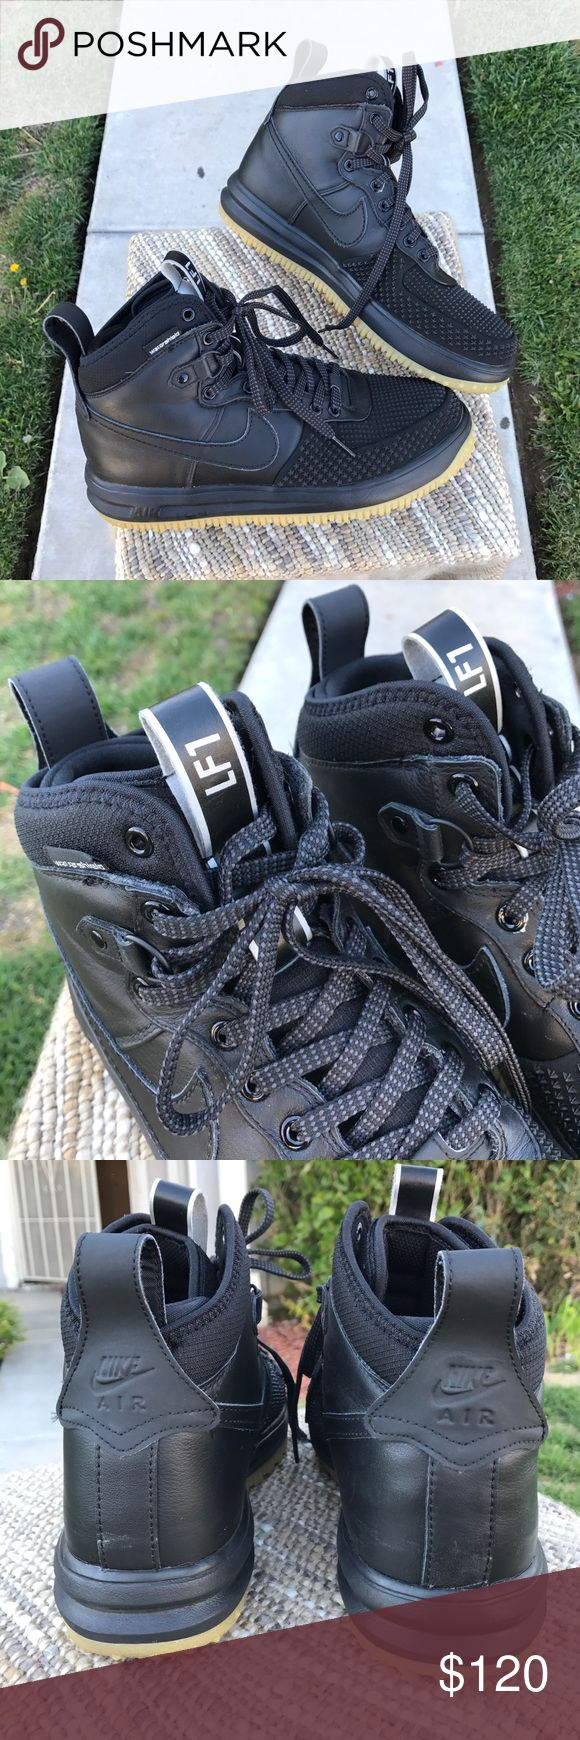 Nike Lunar force 1 Duck boot Black A clean pair of Nike Lunar force 1s ( Duck Boot) / black color / EUC / no rips or heavy stains / pics show all detail / a few marks from moving around / no defects just have two pairs I purchased / might have been returns / Nike Shoes Sneakers